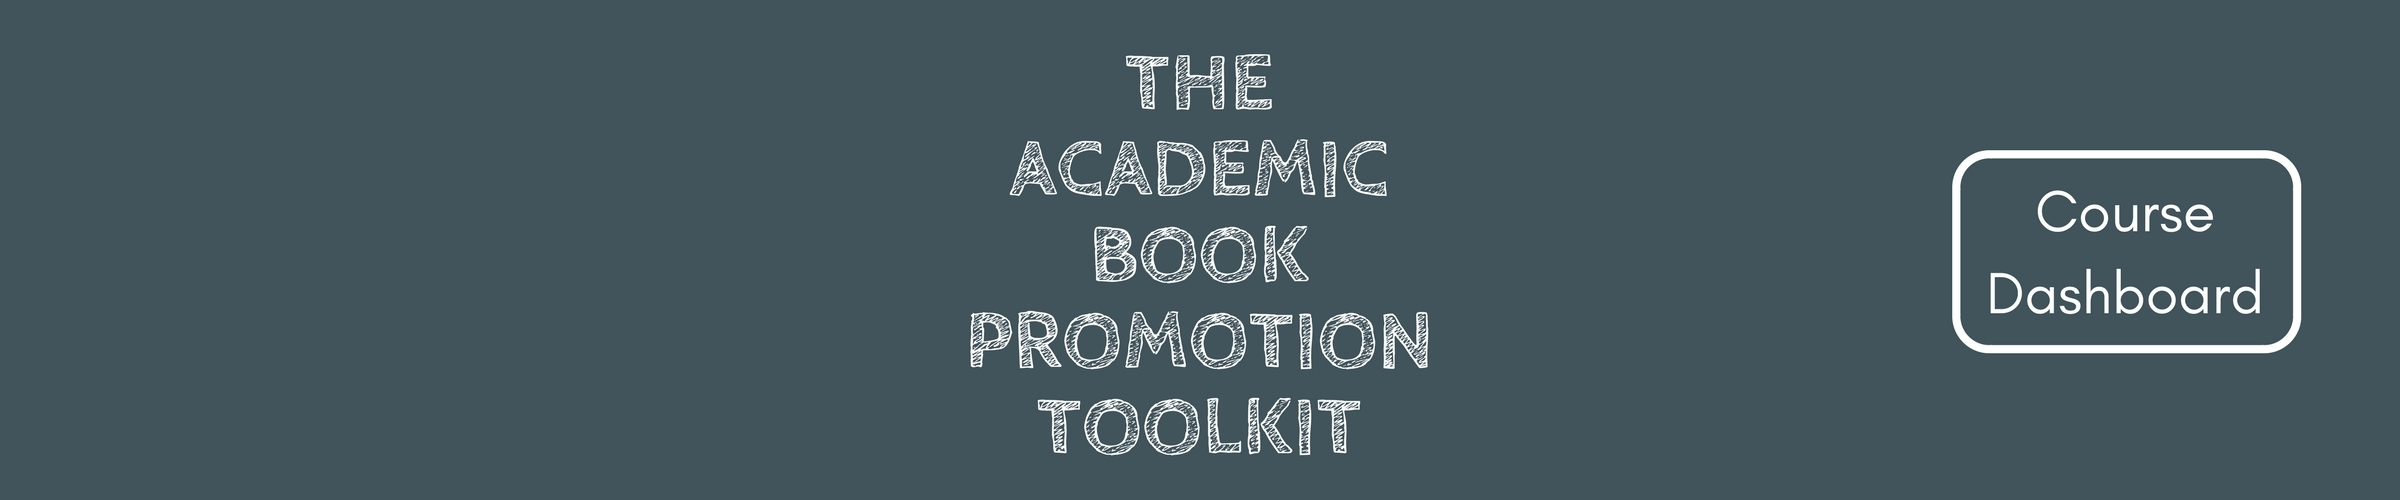 Cover the academic book promotion toolkit header 2